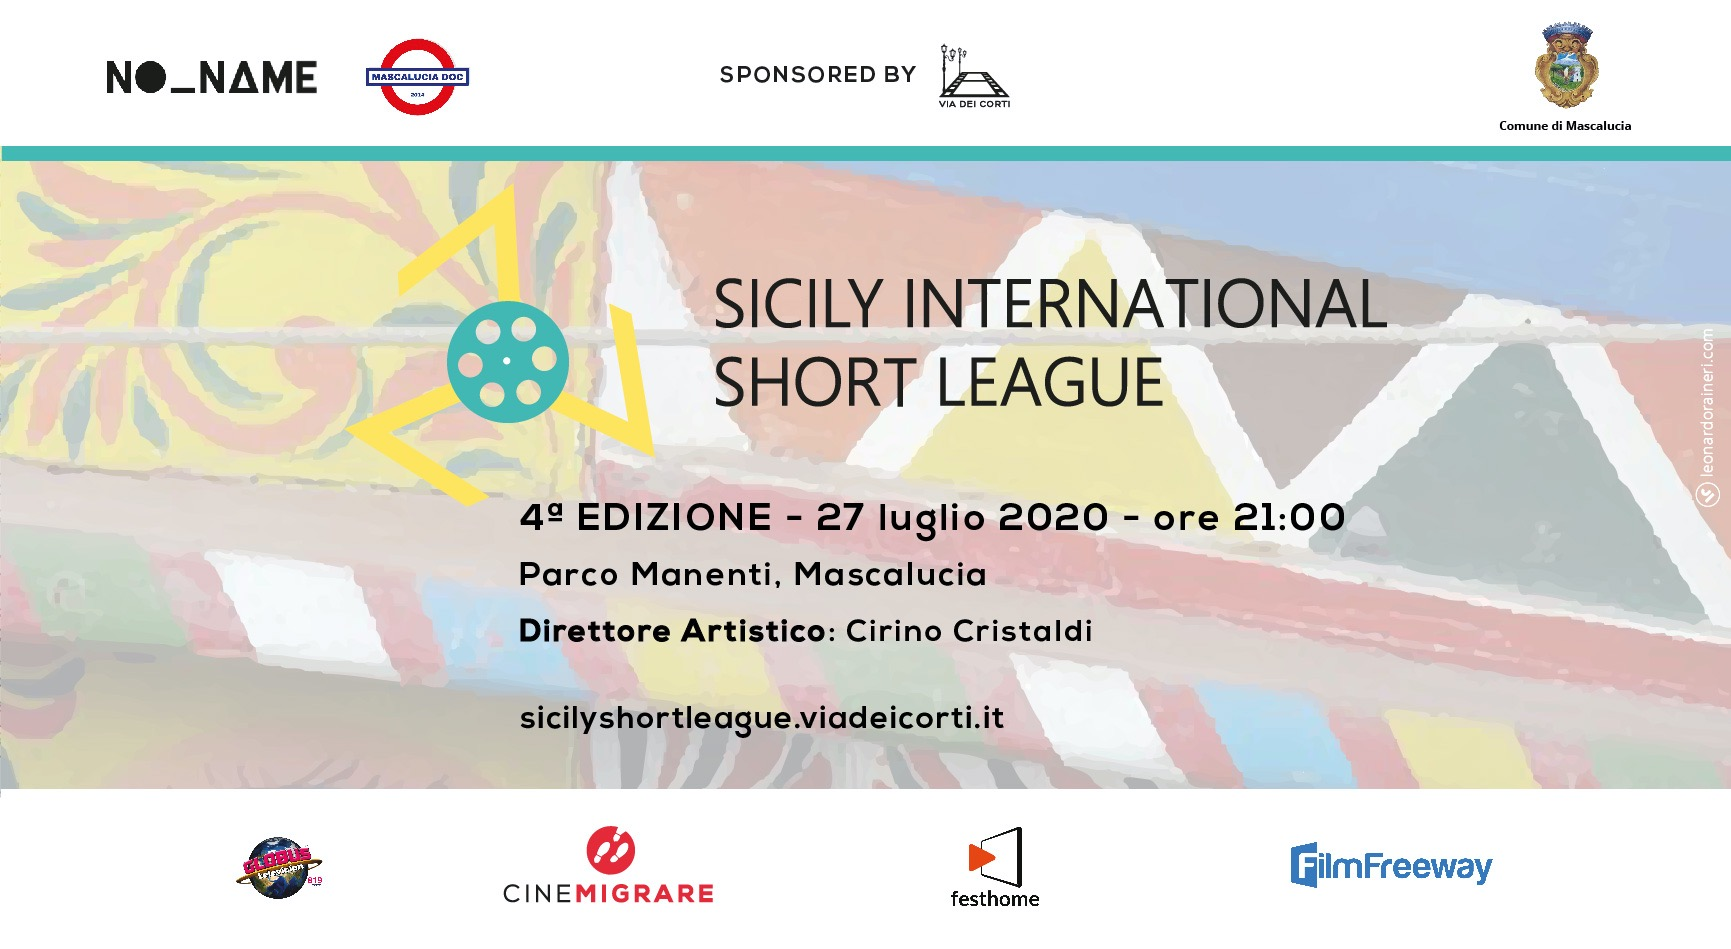 Il 27 luglio 2020 torna Sicily International Short League 2020